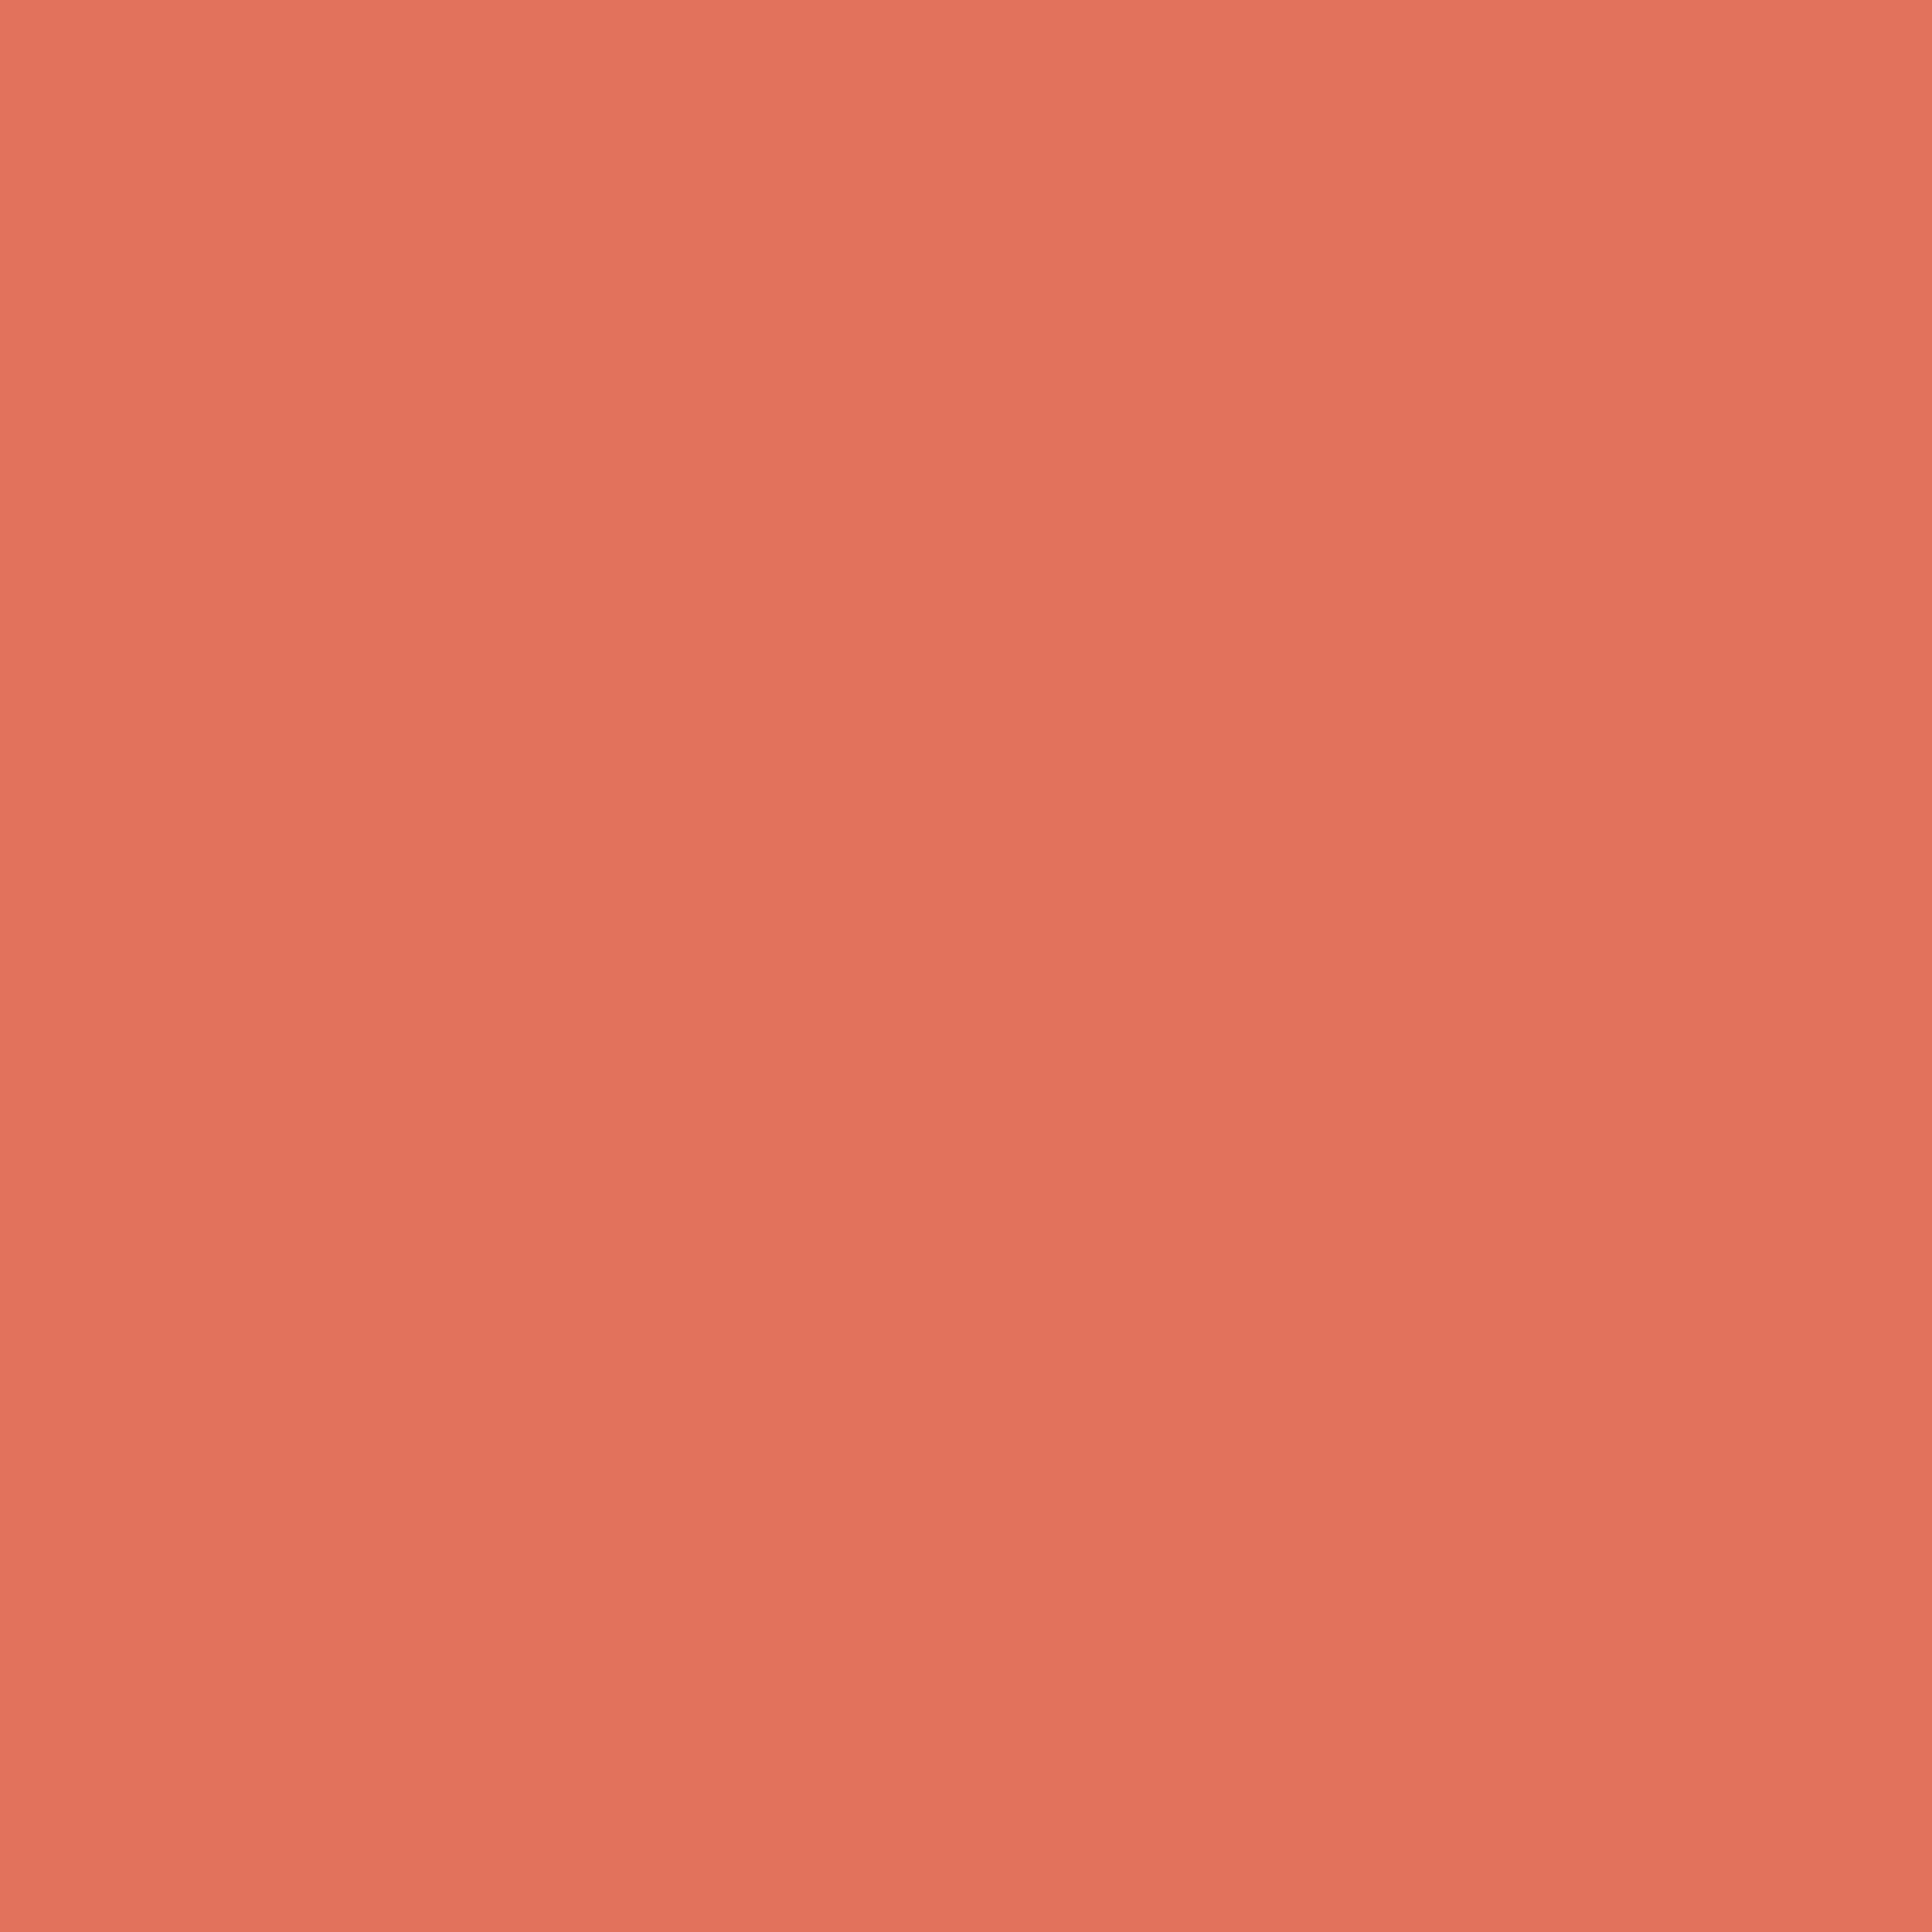 2048x2048 Terra Cotta Solid Color Background